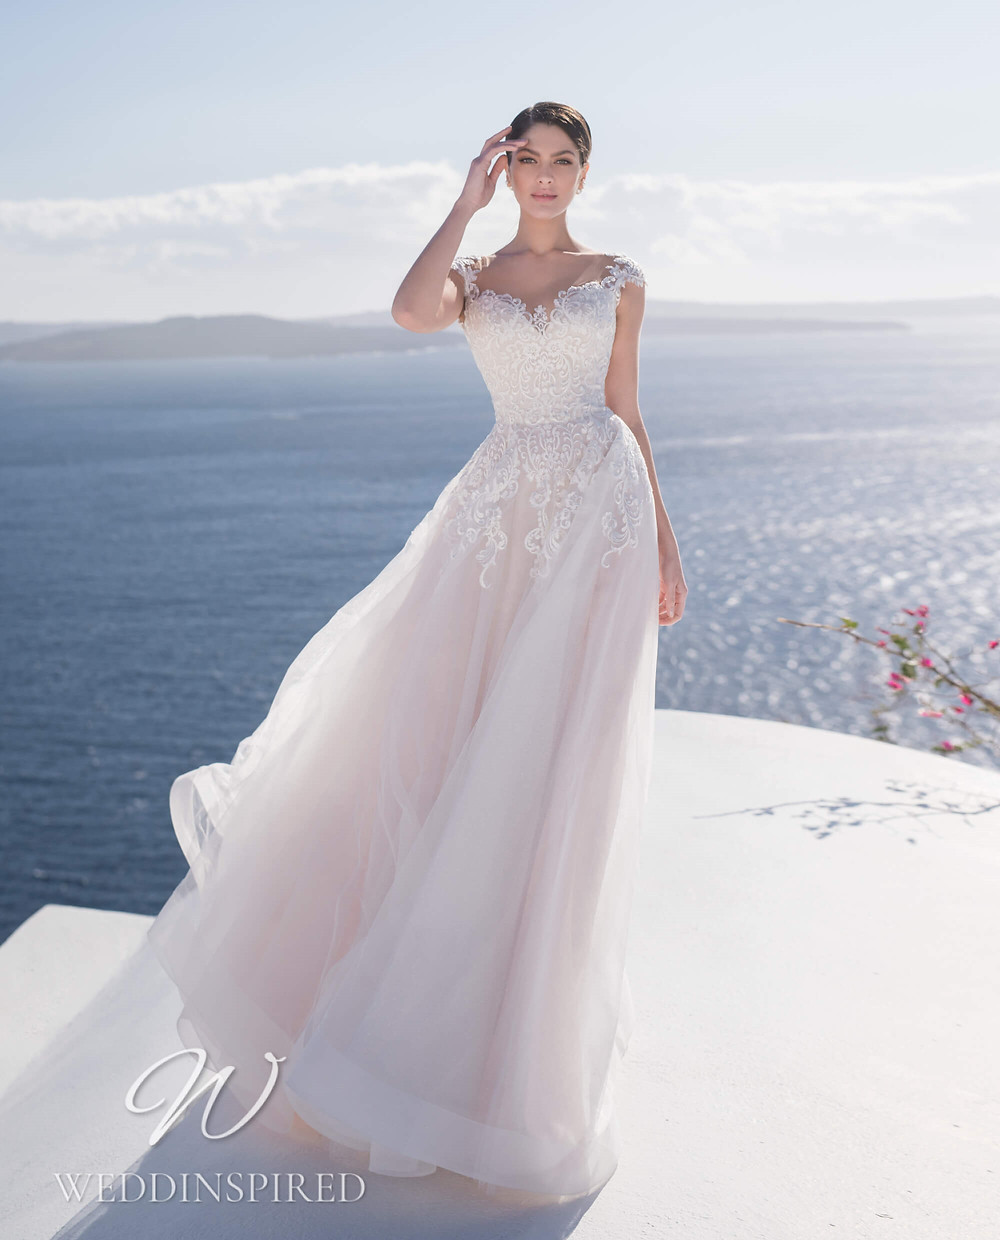 A Blunny 2021 flowy lace and tulle A-line wedding dress